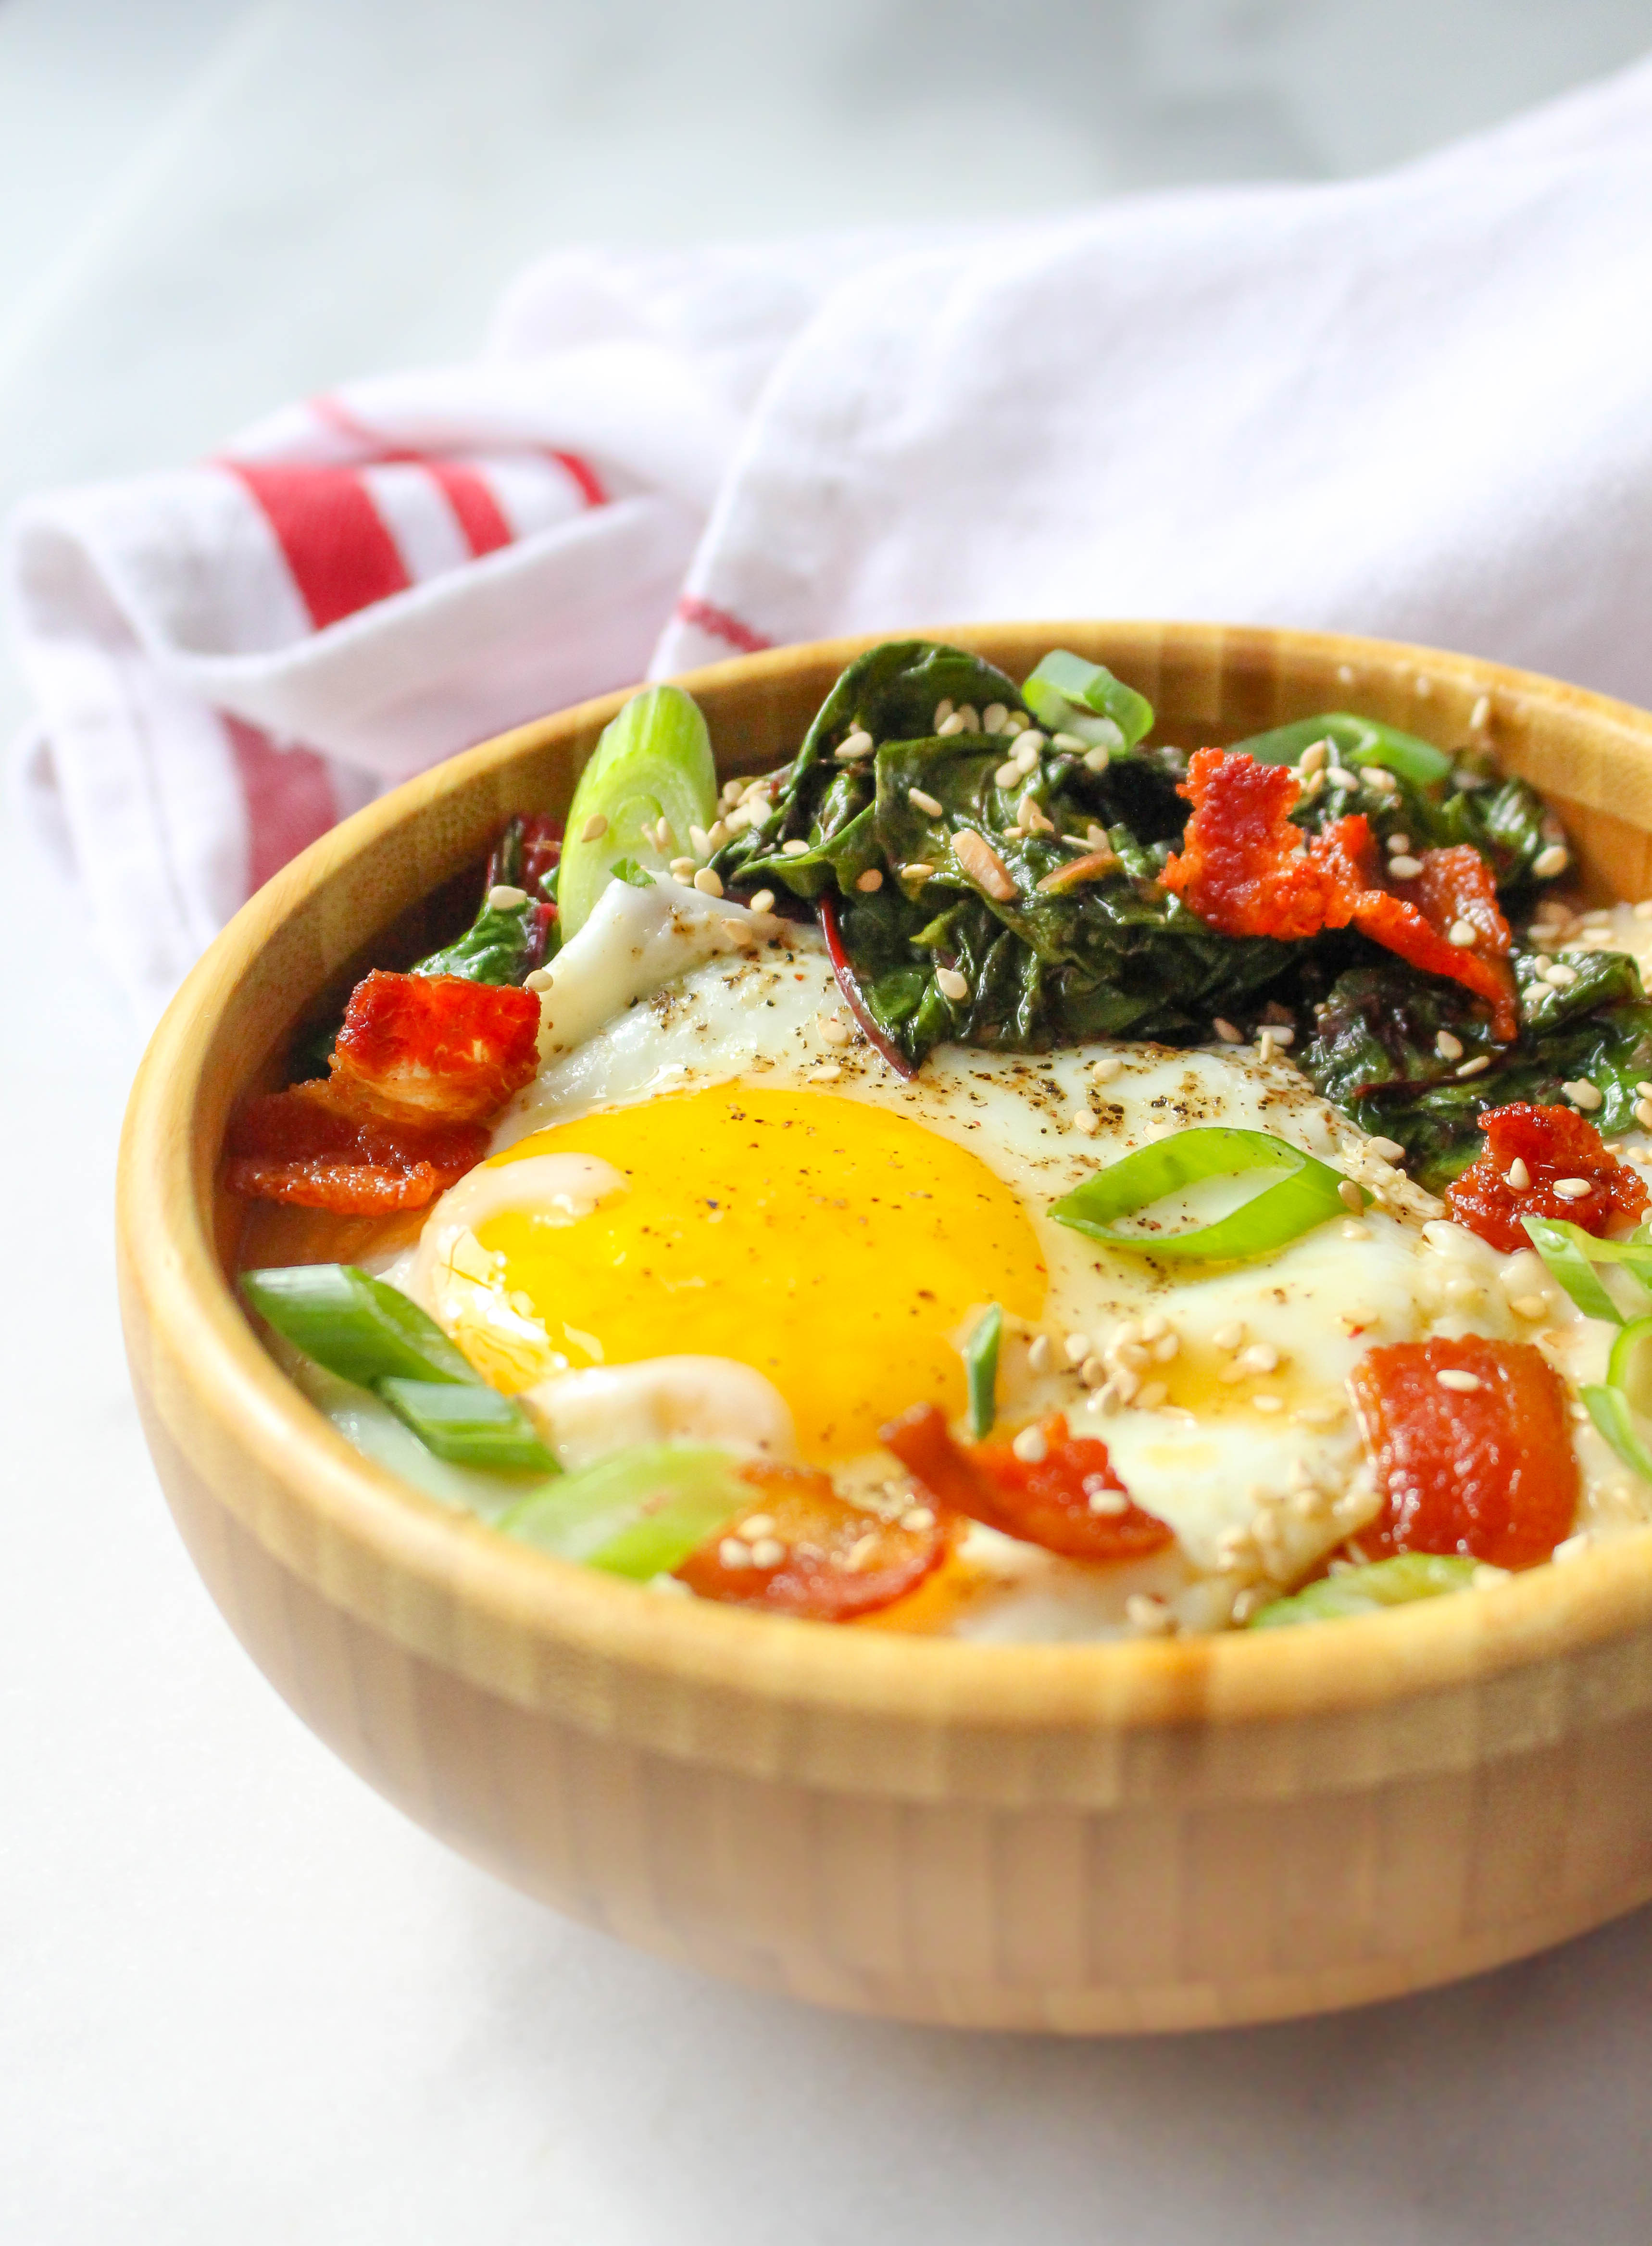 Savory Cheddar Oatmeal with Bacon, Garlicky Greens, & Eggs